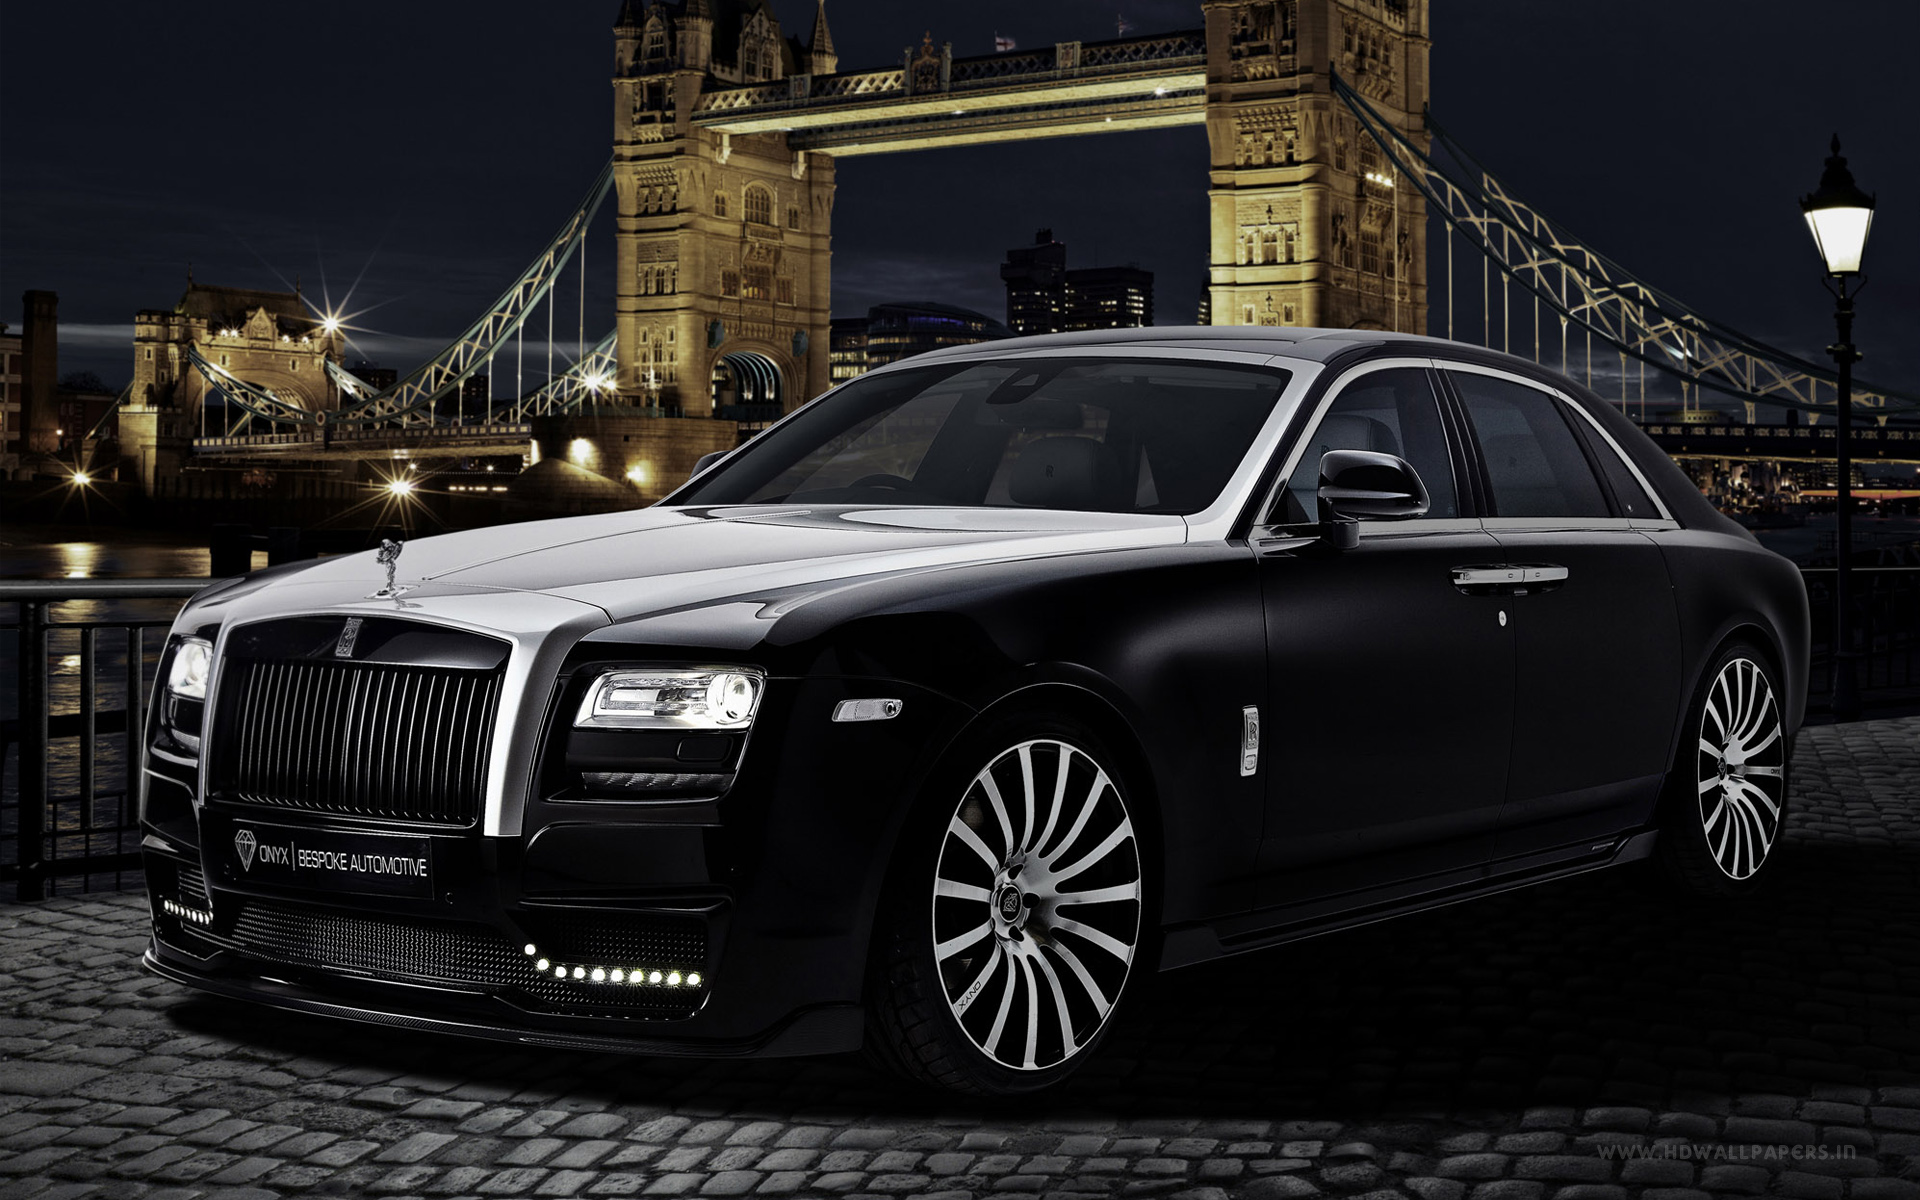 2015 onyx rolls royce ghost san mortiz wallpaper | hd car wallpapers